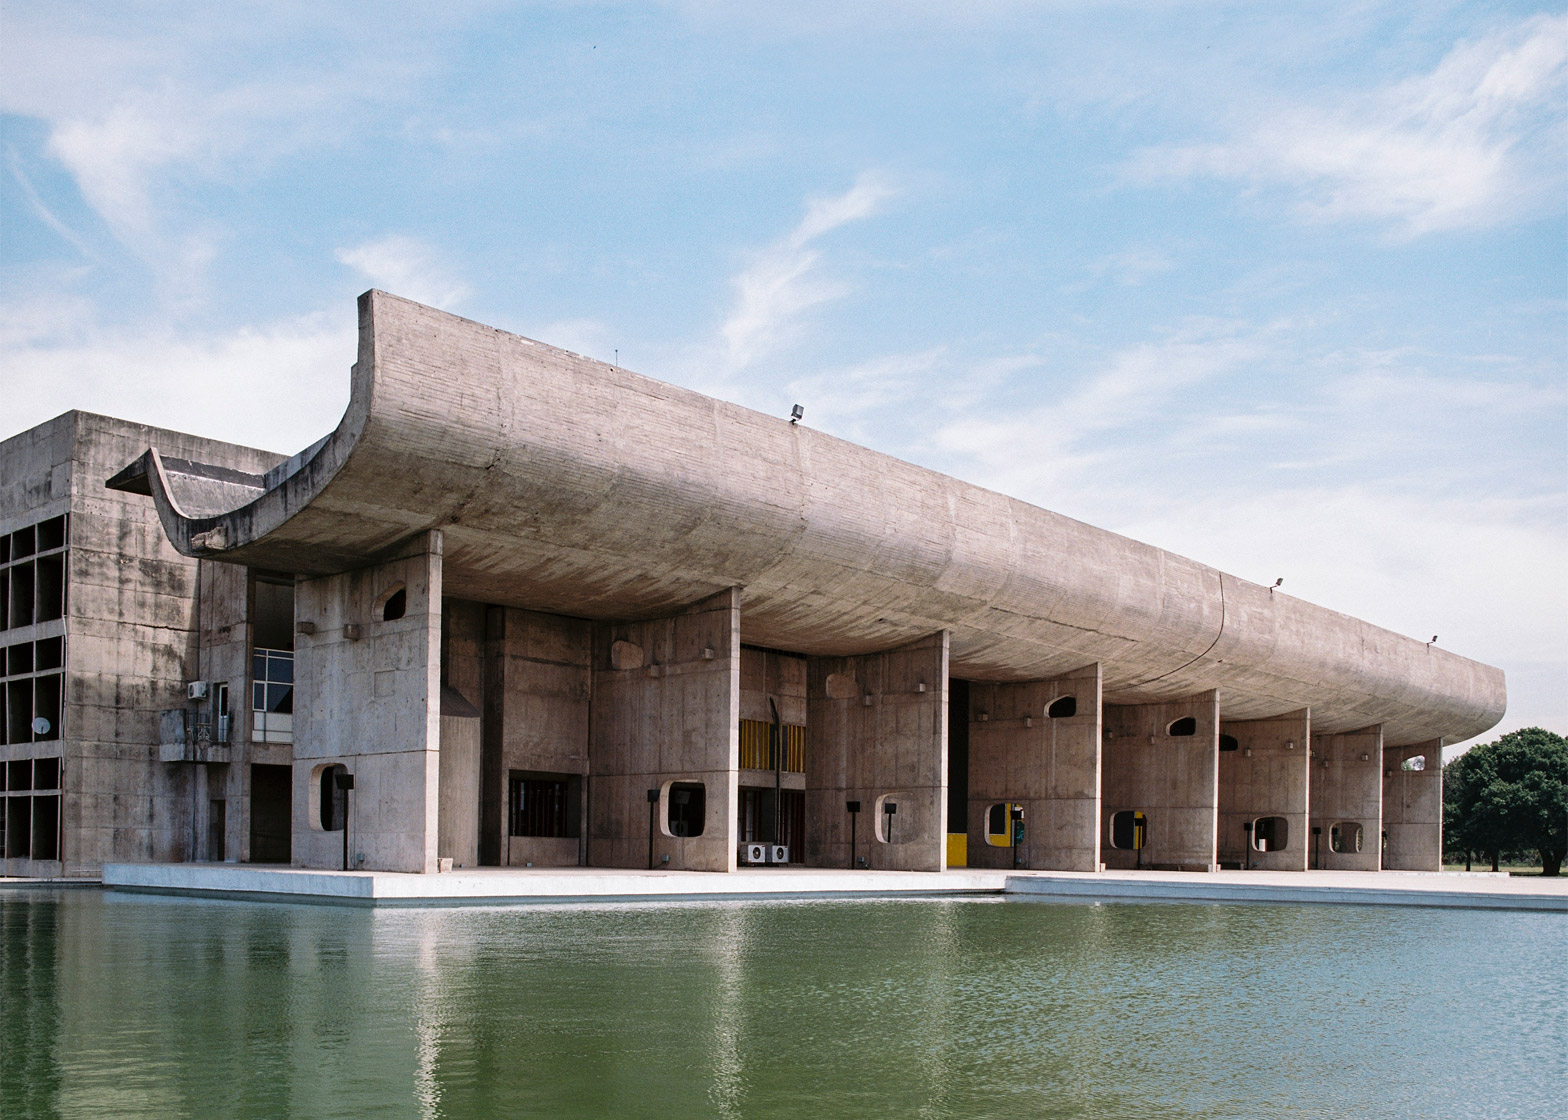 Le Corbusier's The Palace of Assembly